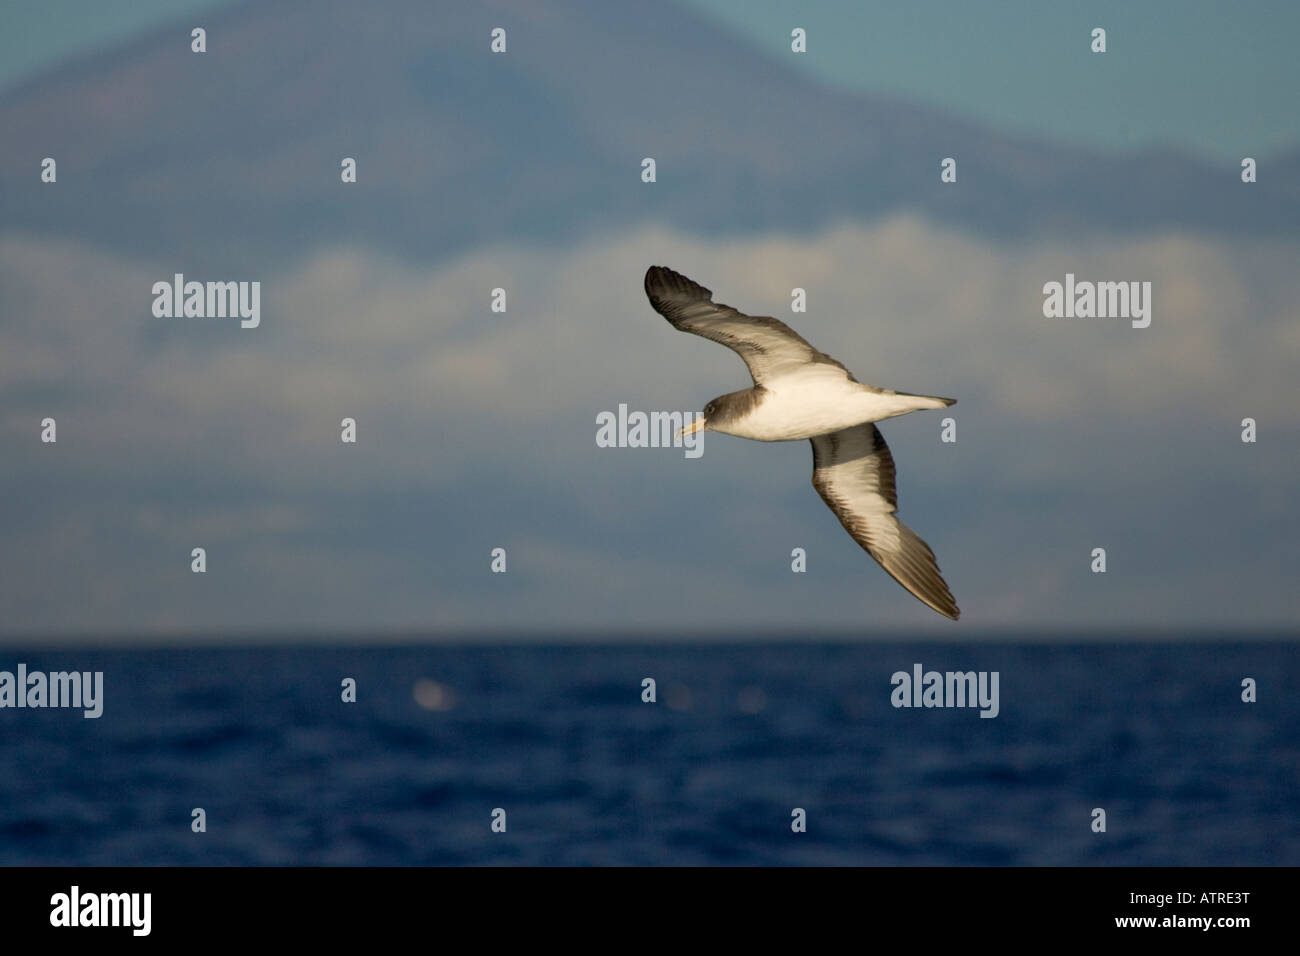 Calonectris Diomedea Cory s Shearwater soaring - Stock Image